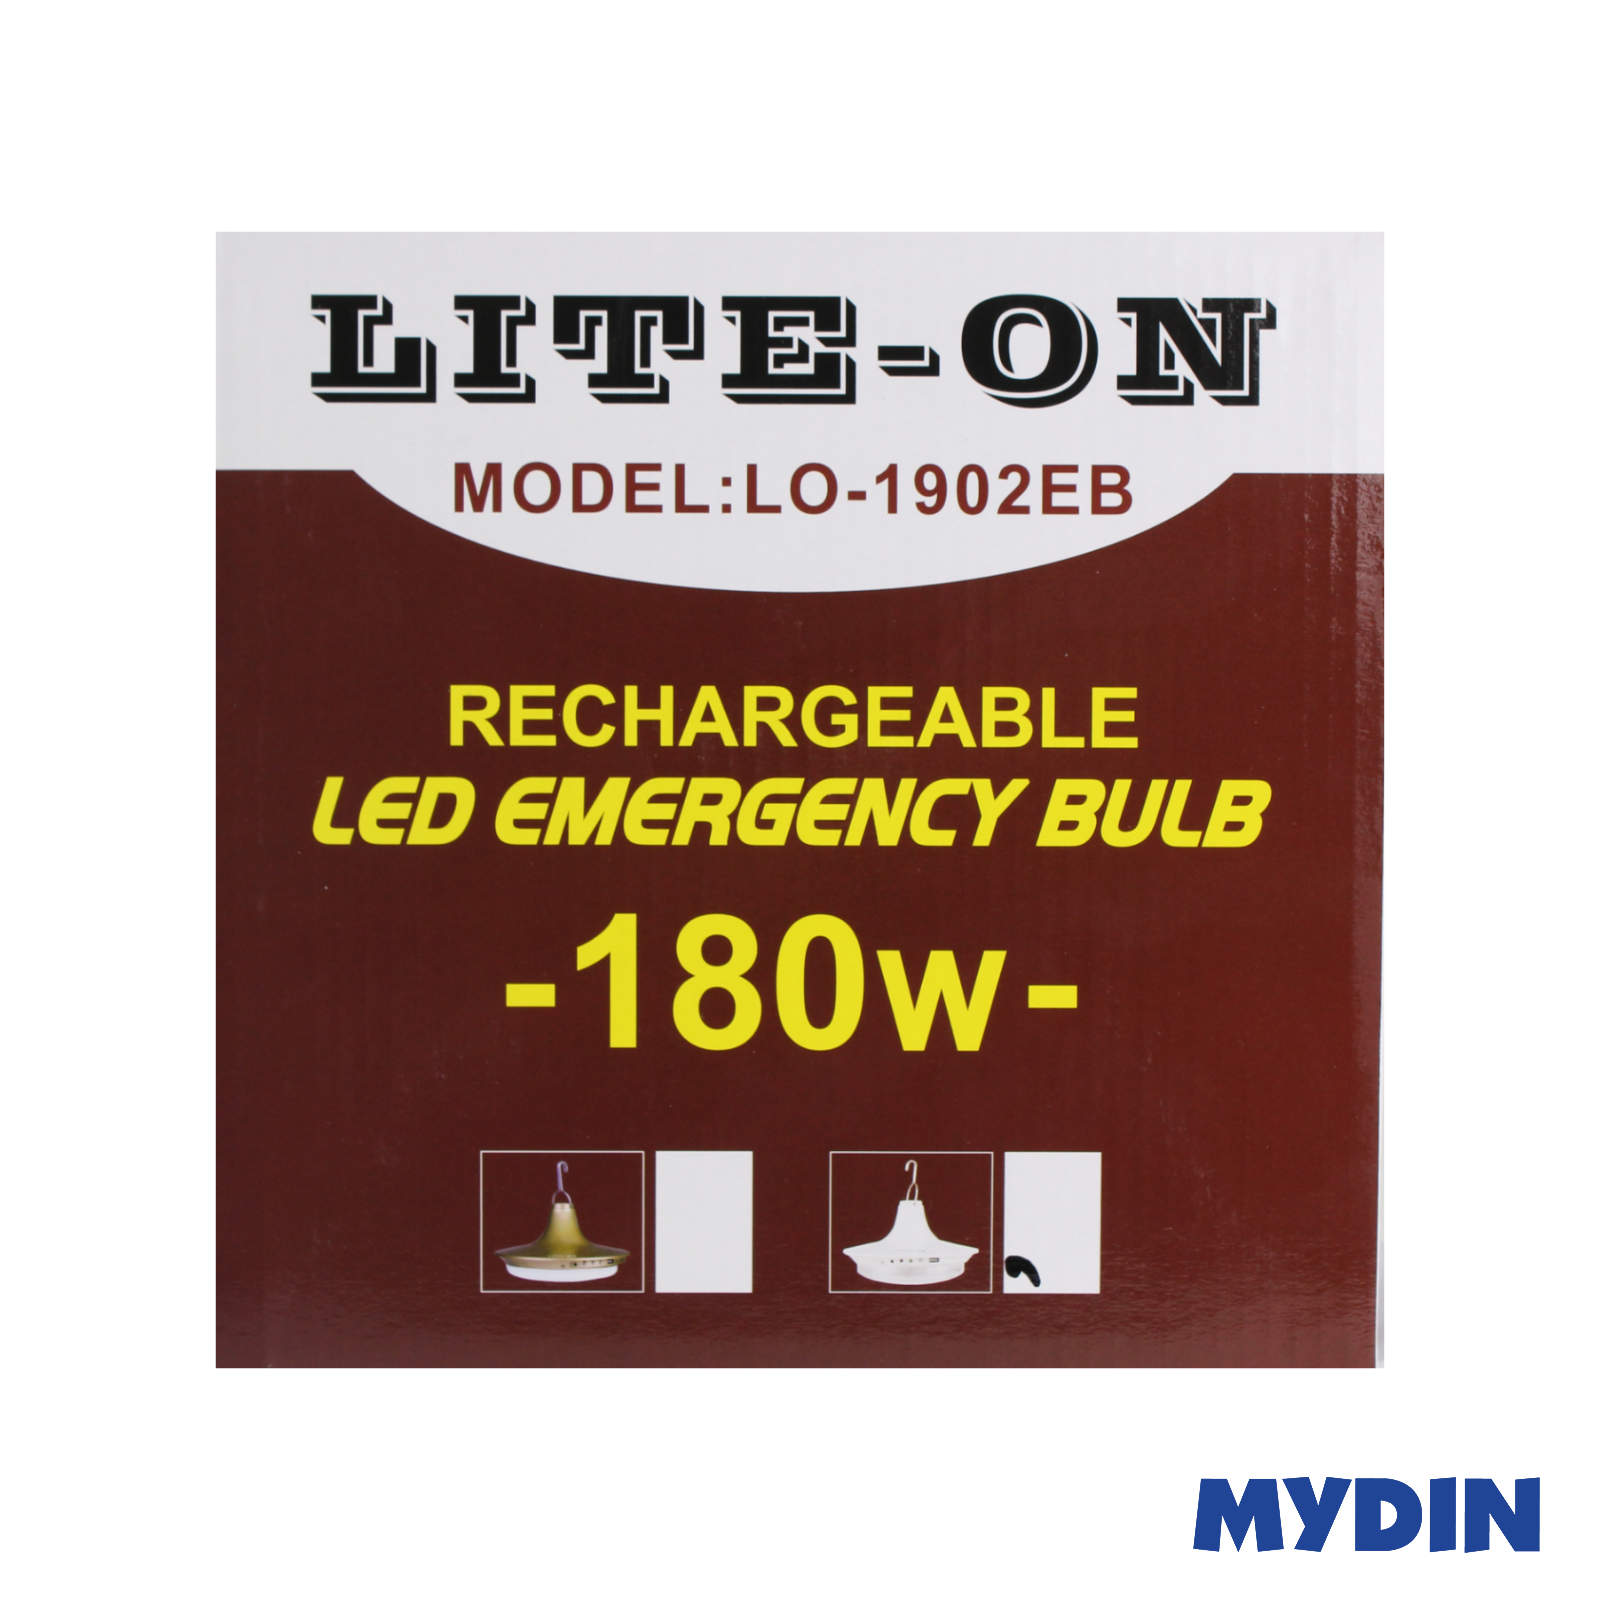 Lite-On LED Rechargeable Emergency Bulb 180W LO-1902EB